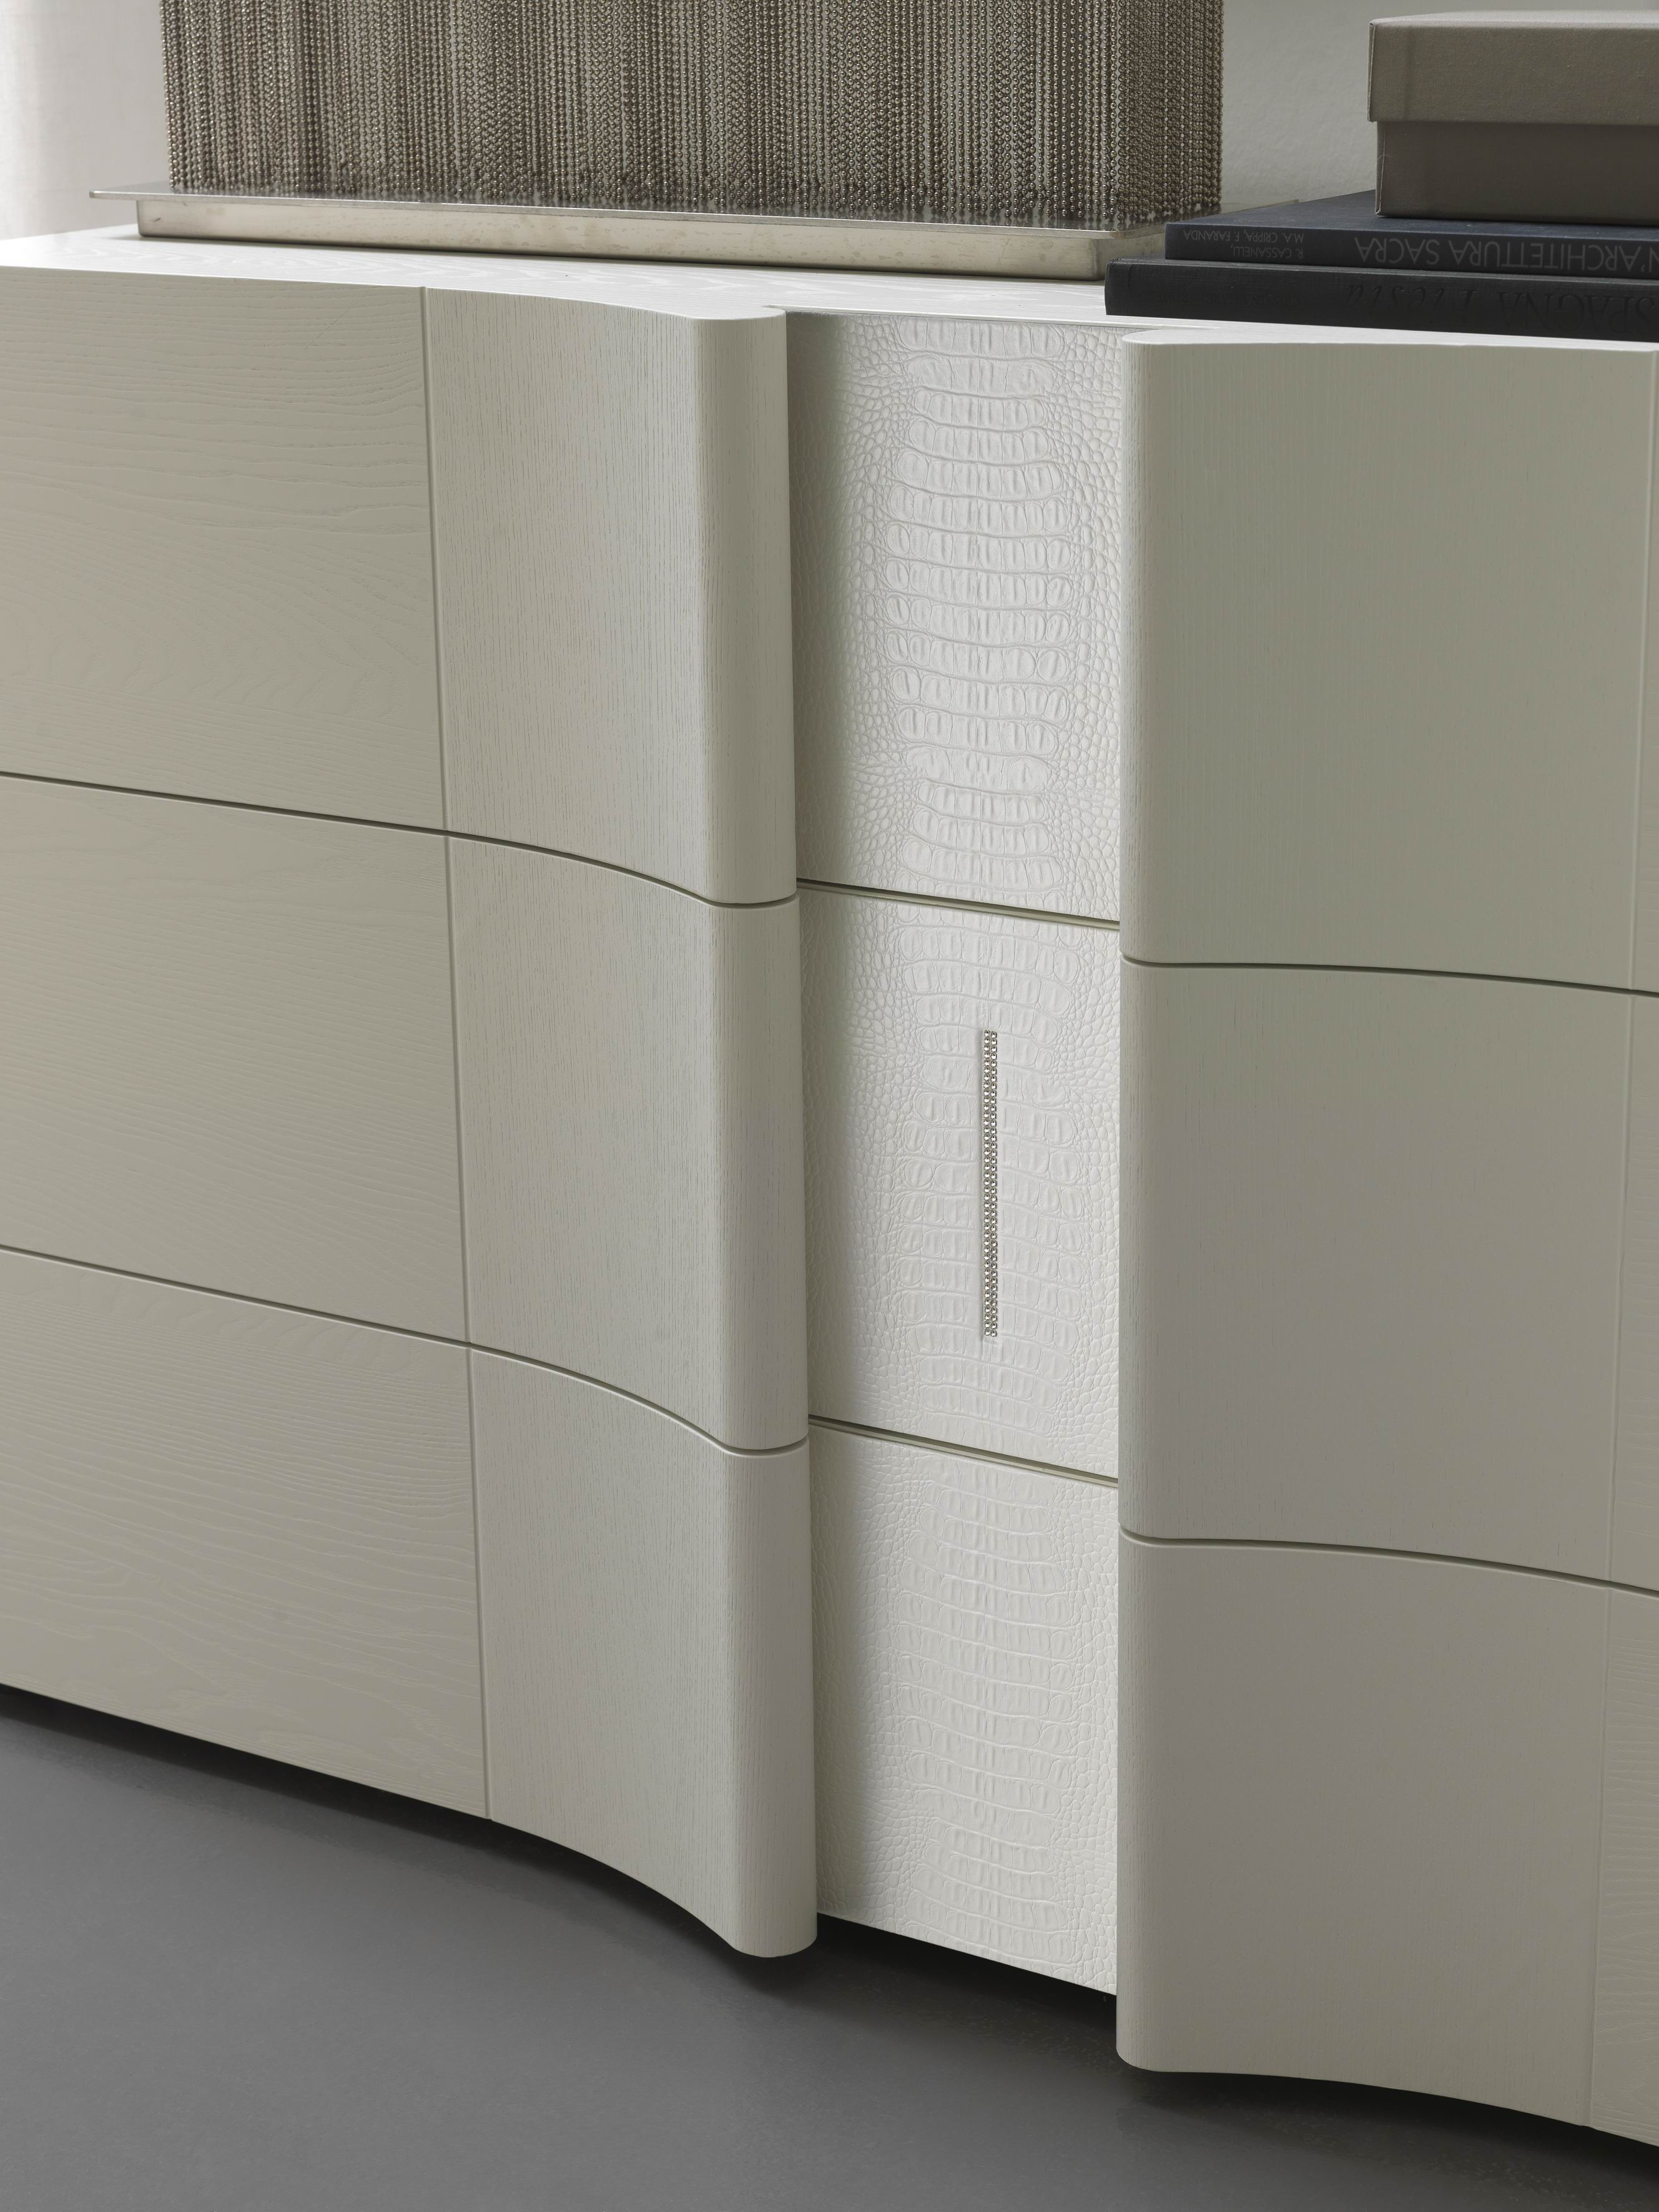 Stunning Camere Da Letto Sma Images - Reflexdirectory.info ...